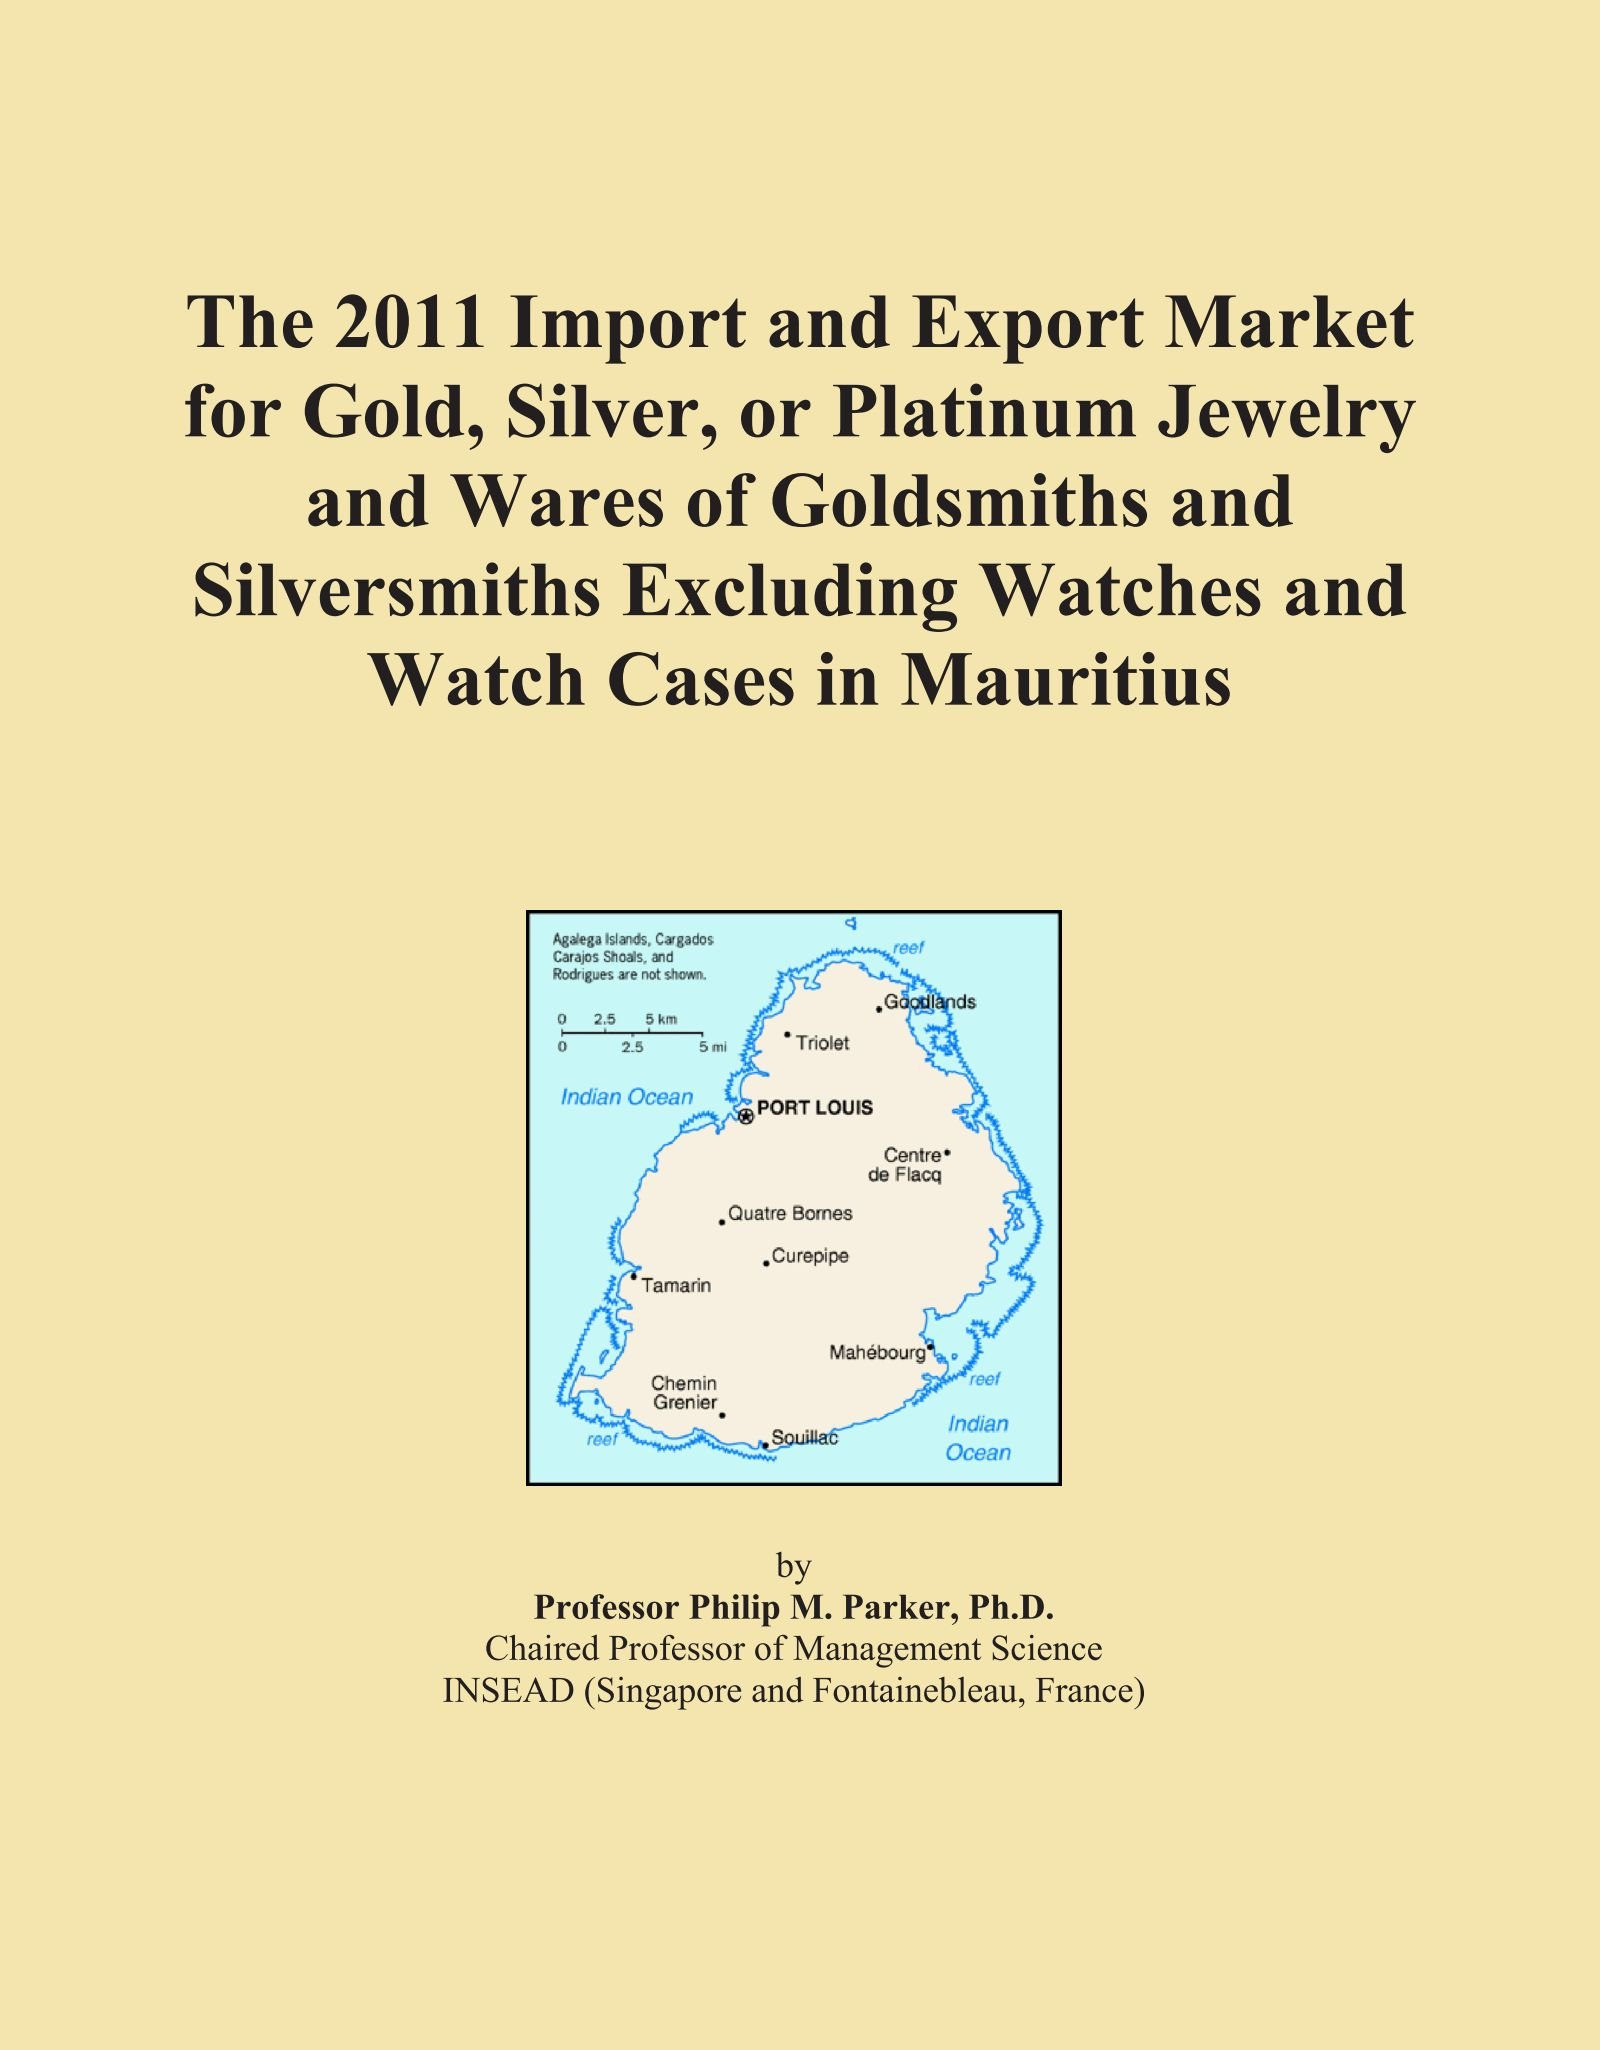 Download The 2011 Import and Export Market for Gold, Silver, or Platinum Jewelry and Wares of Goldsmiths and Silversmiths Excluding Watches and Watch Cases in Mauritius PDF